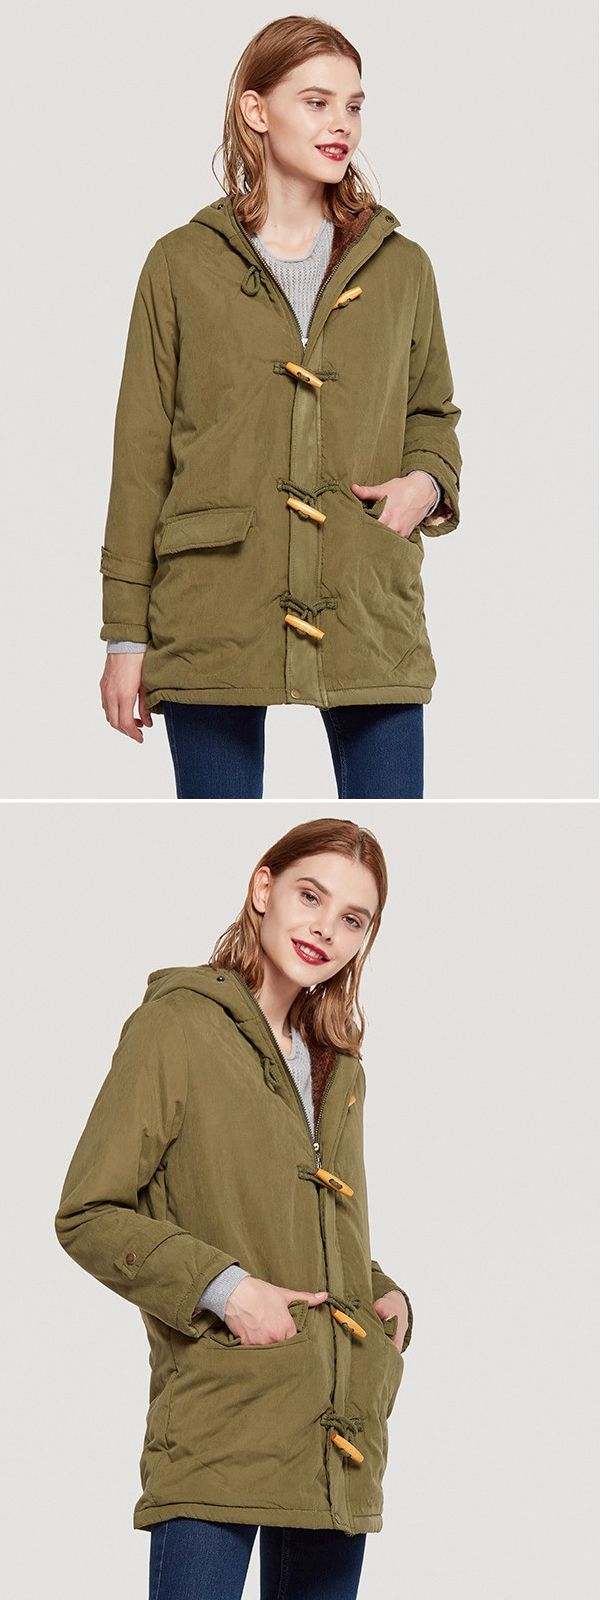 Vinfemass Buttons Pockets Fitted Plus Size Hooded Cotton Padded Coat